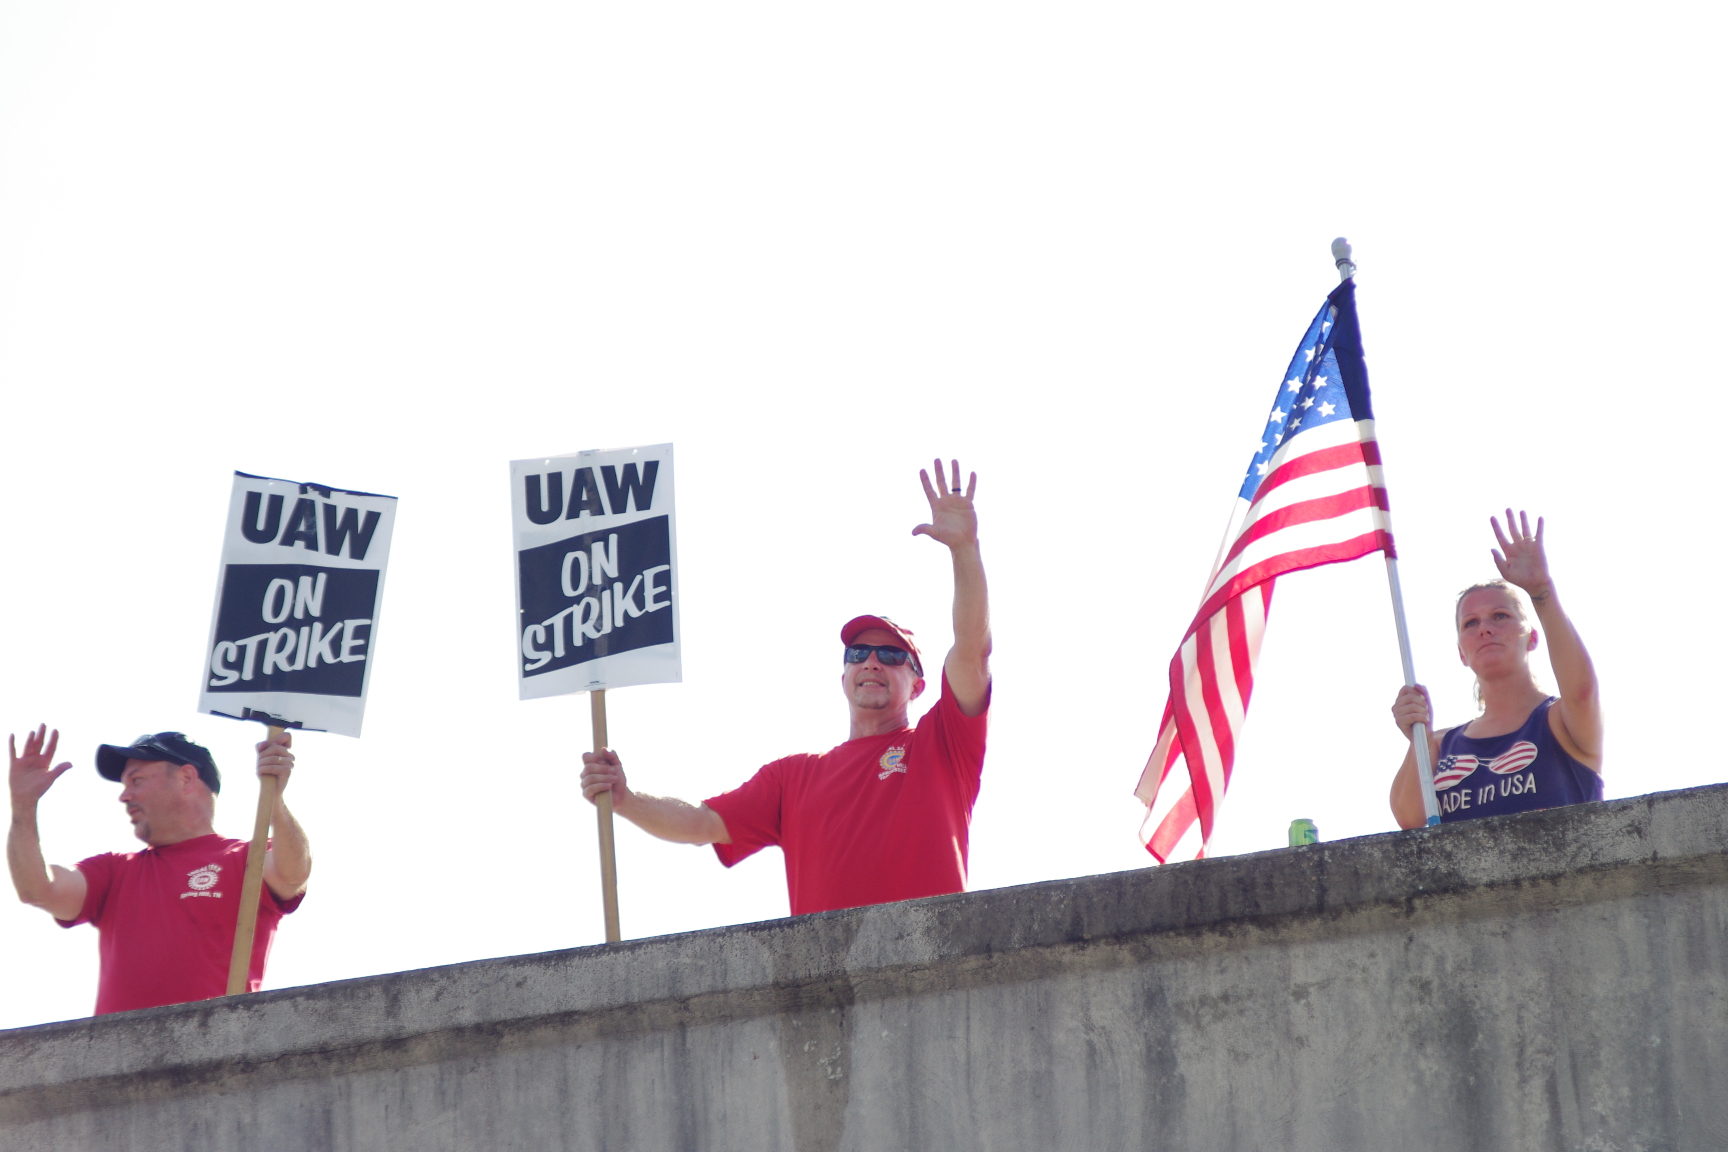 Spring Hill GM workers hold steady as national strike enters third week